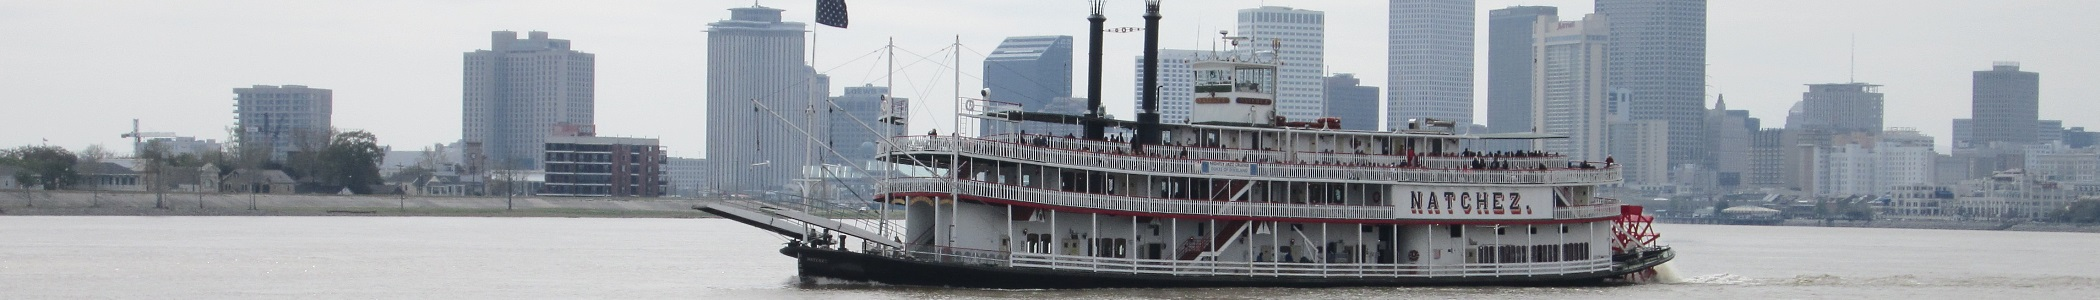 Riverboat passing New Orleans, on the Mississippi River. In Louisiana, United States.